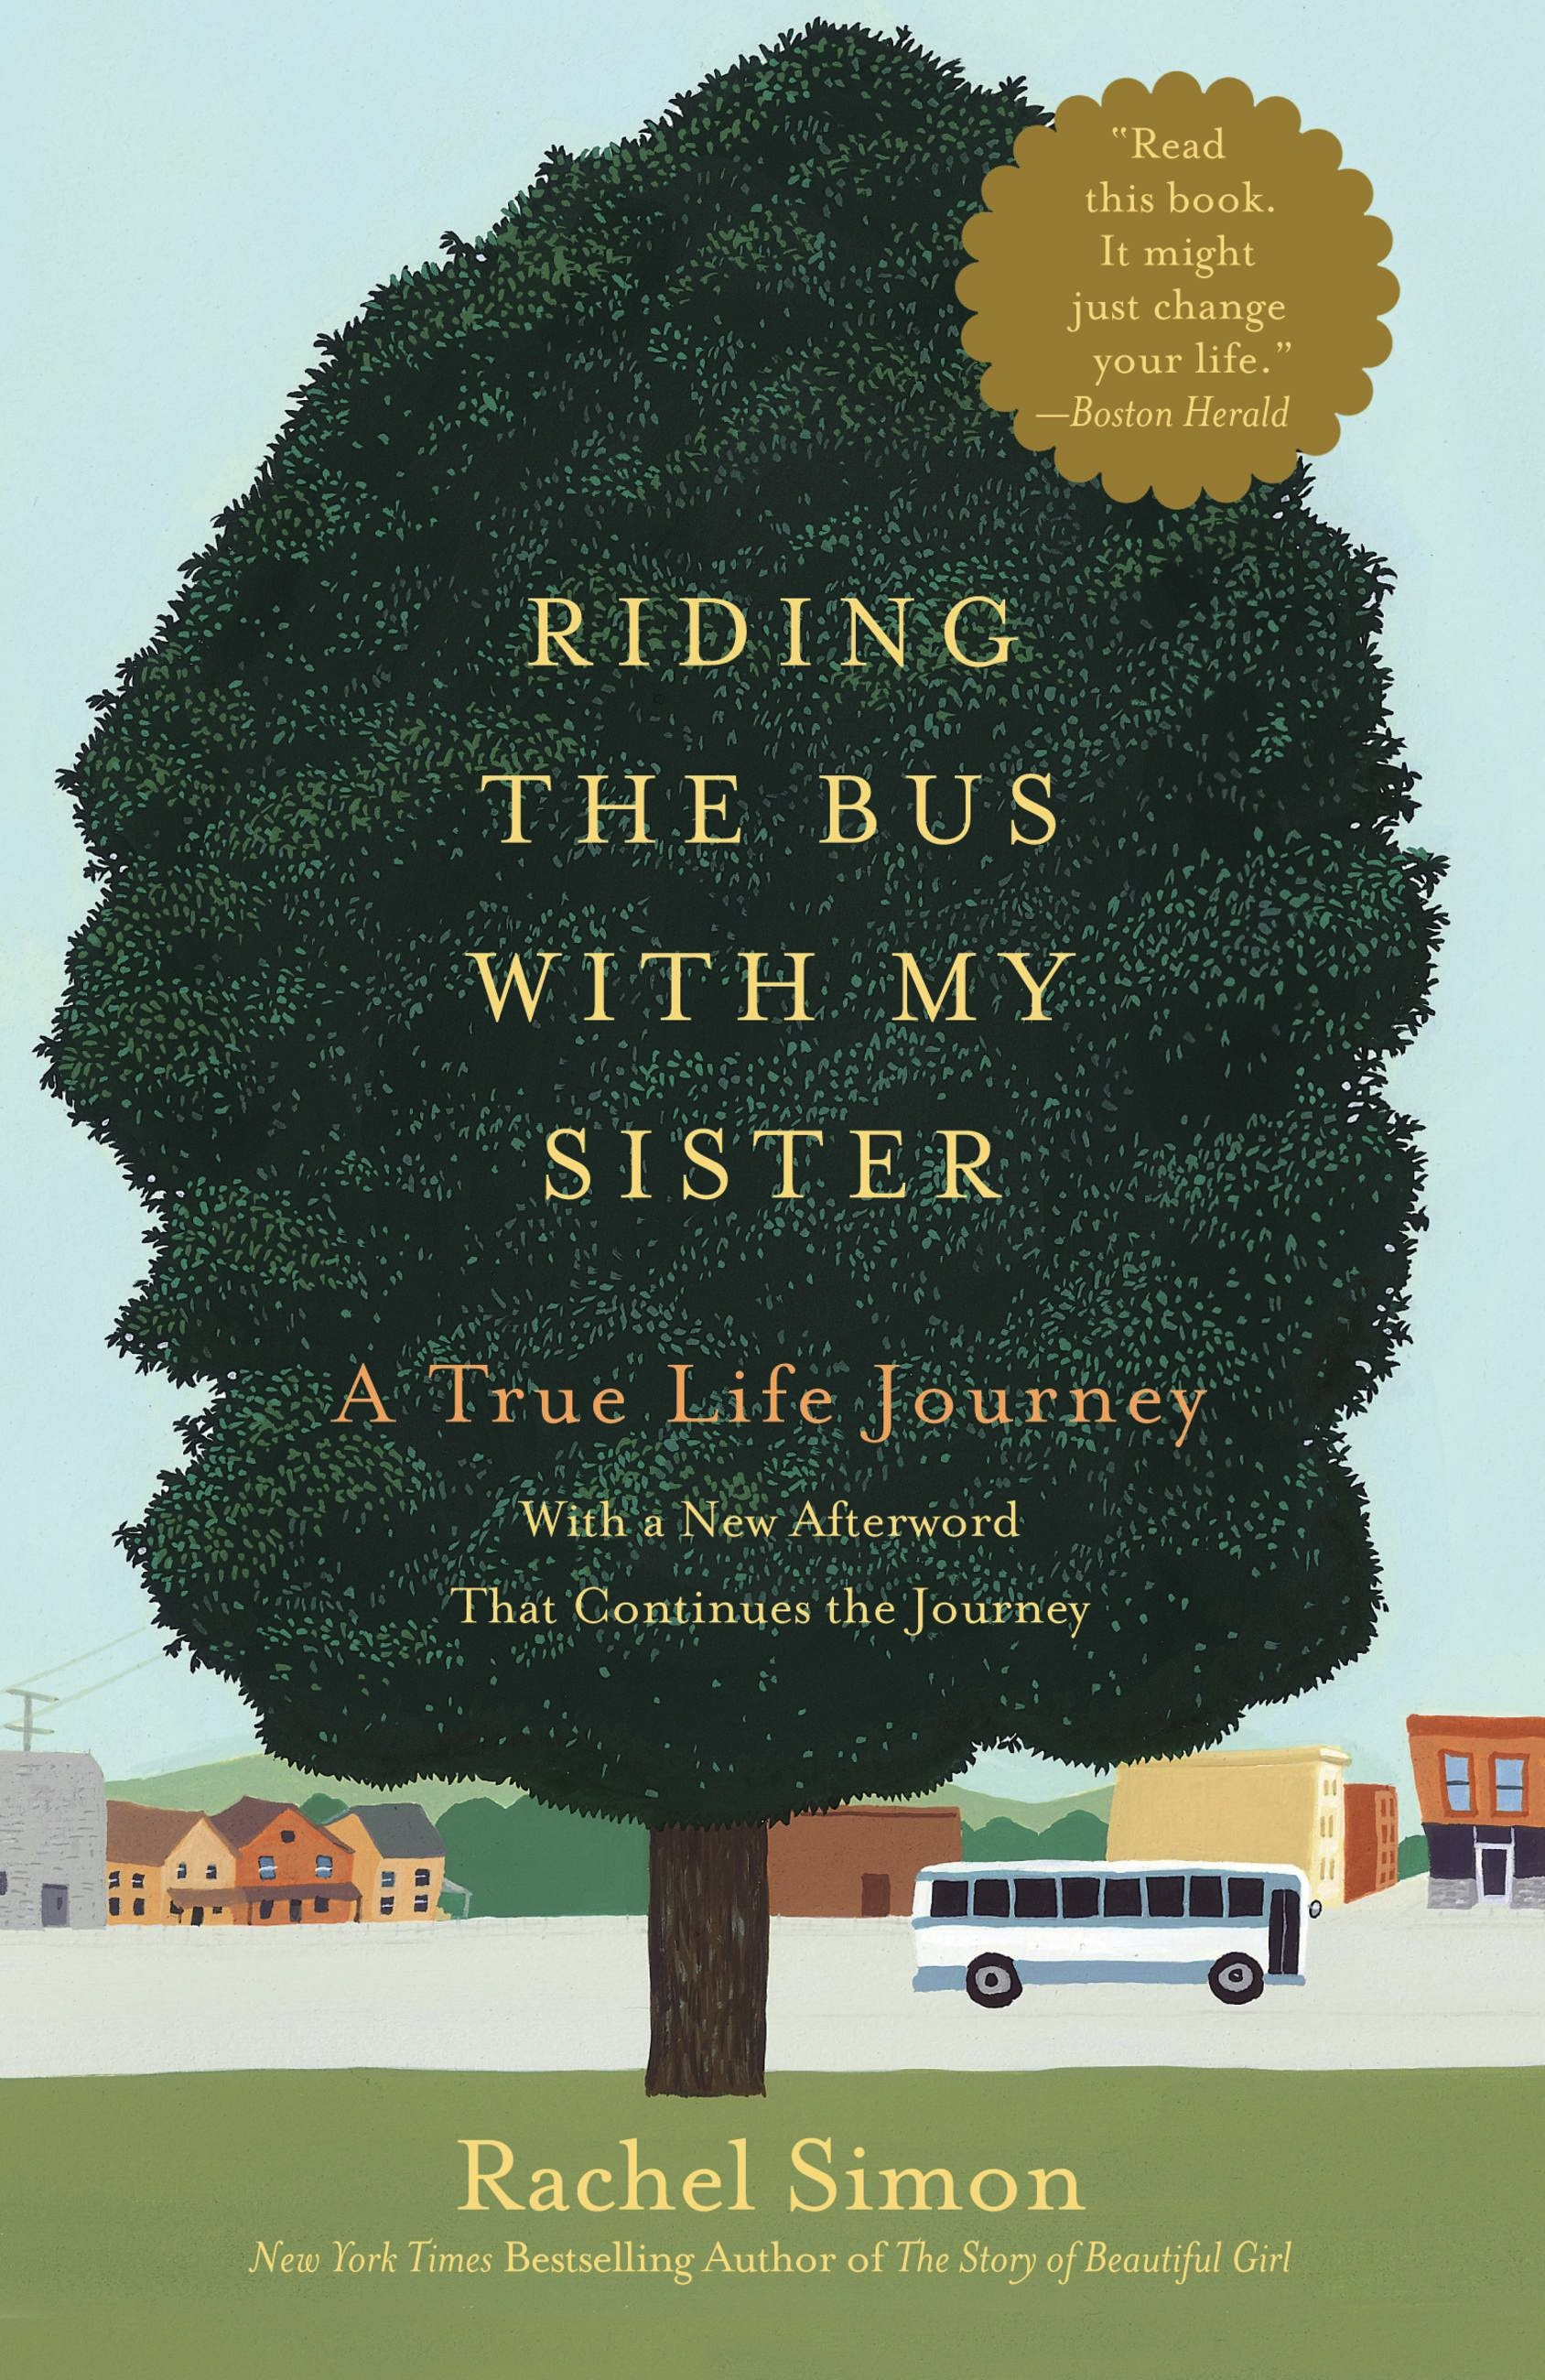 riding the bus with my sister Family relationships and forgiveness converge in this true-life chronicle by novelist simon (the magic touch, 1994) of a year that gave her better understanding of her mentally retarded sister.